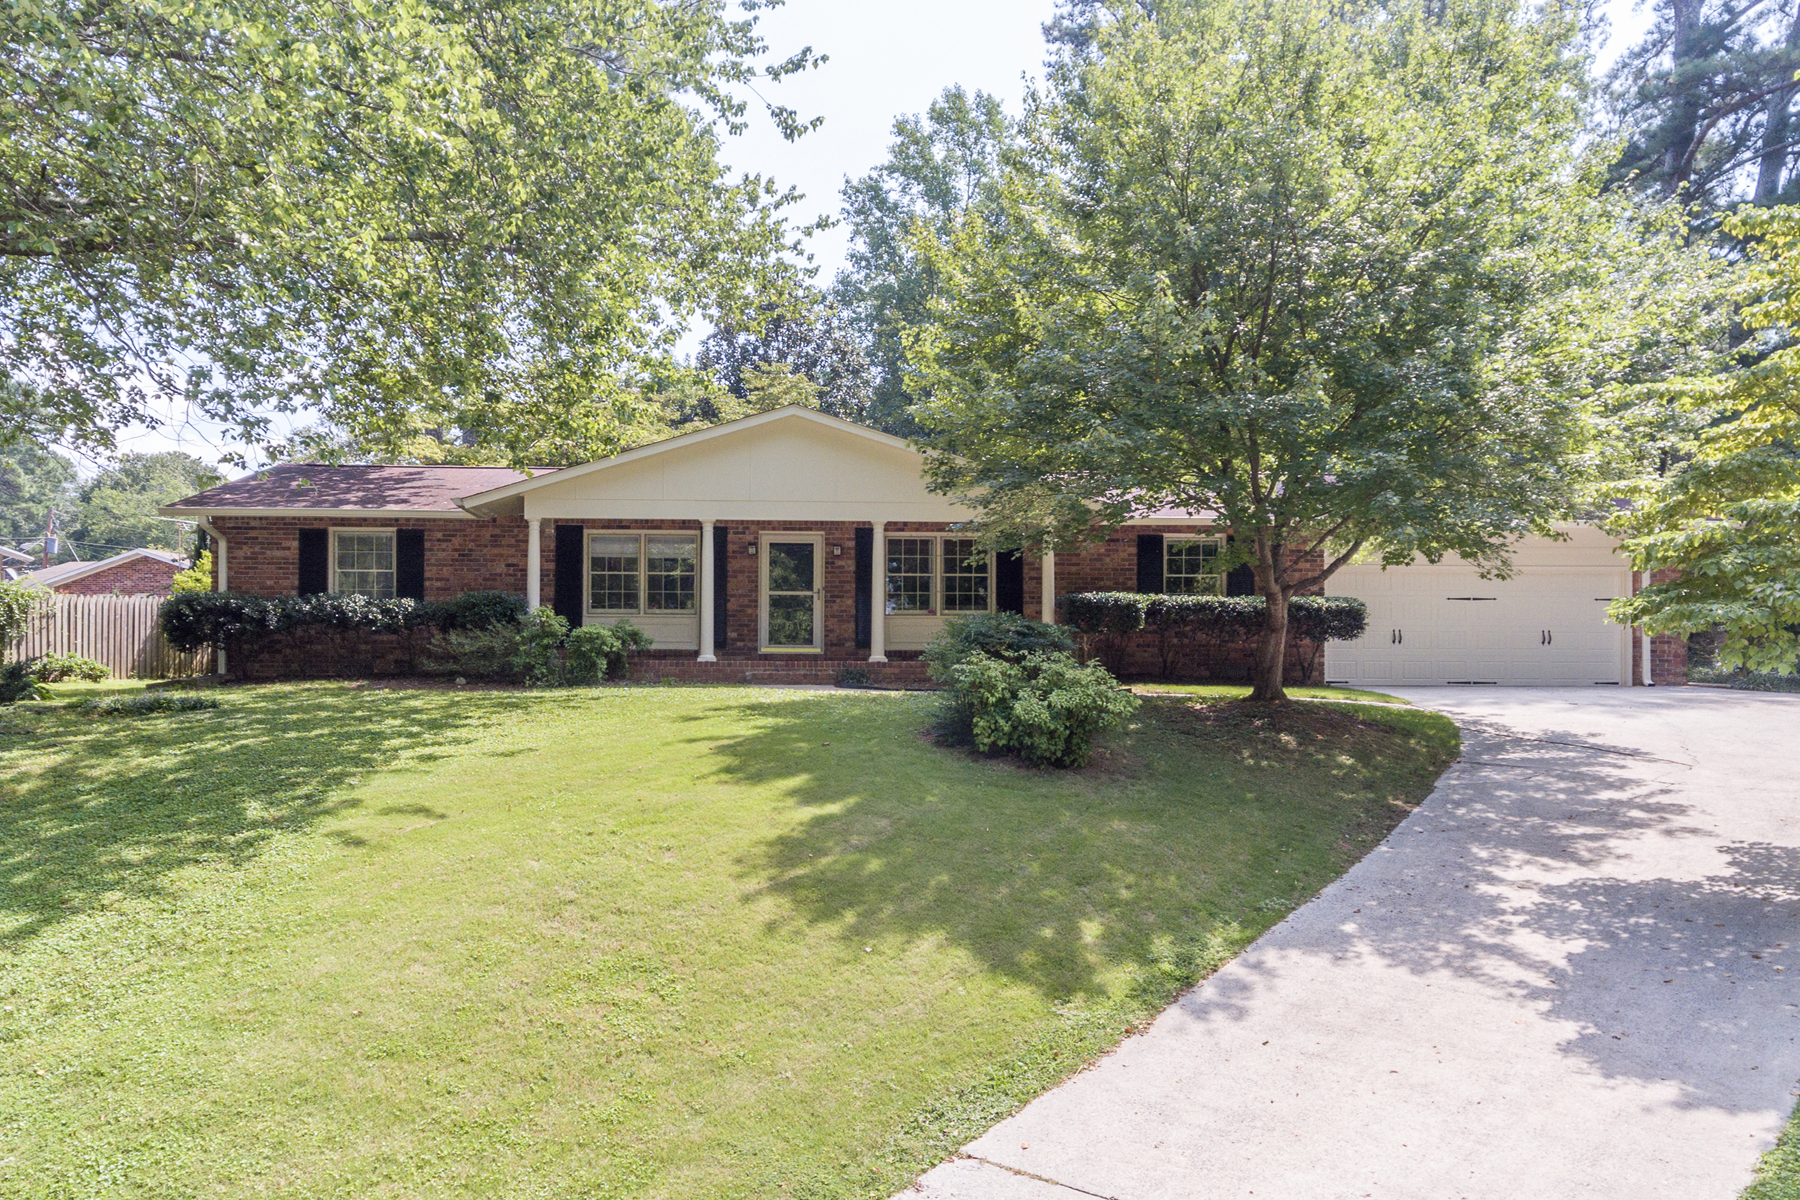 Tek Ailelik Ev için Satış at Lovely Four Sided Brick Ranch In Huntley Hills 4143 Commodore Drive Chamblee, Georgia, 30341 Amerika Birleşik Devletleri